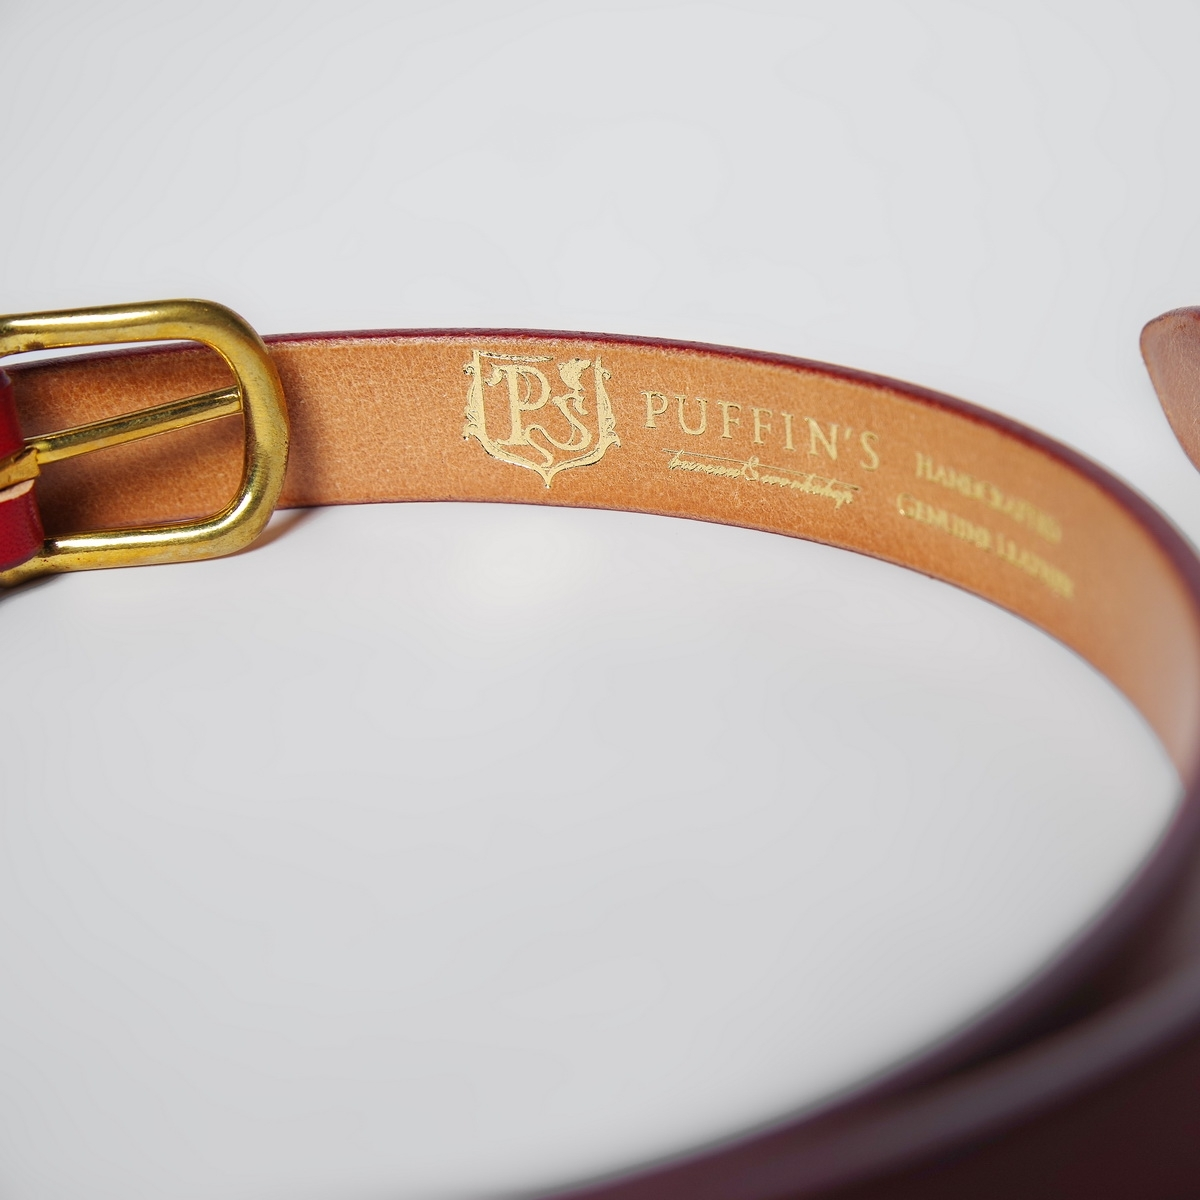 An exquisite 20mm belt with a brass buckle red currant